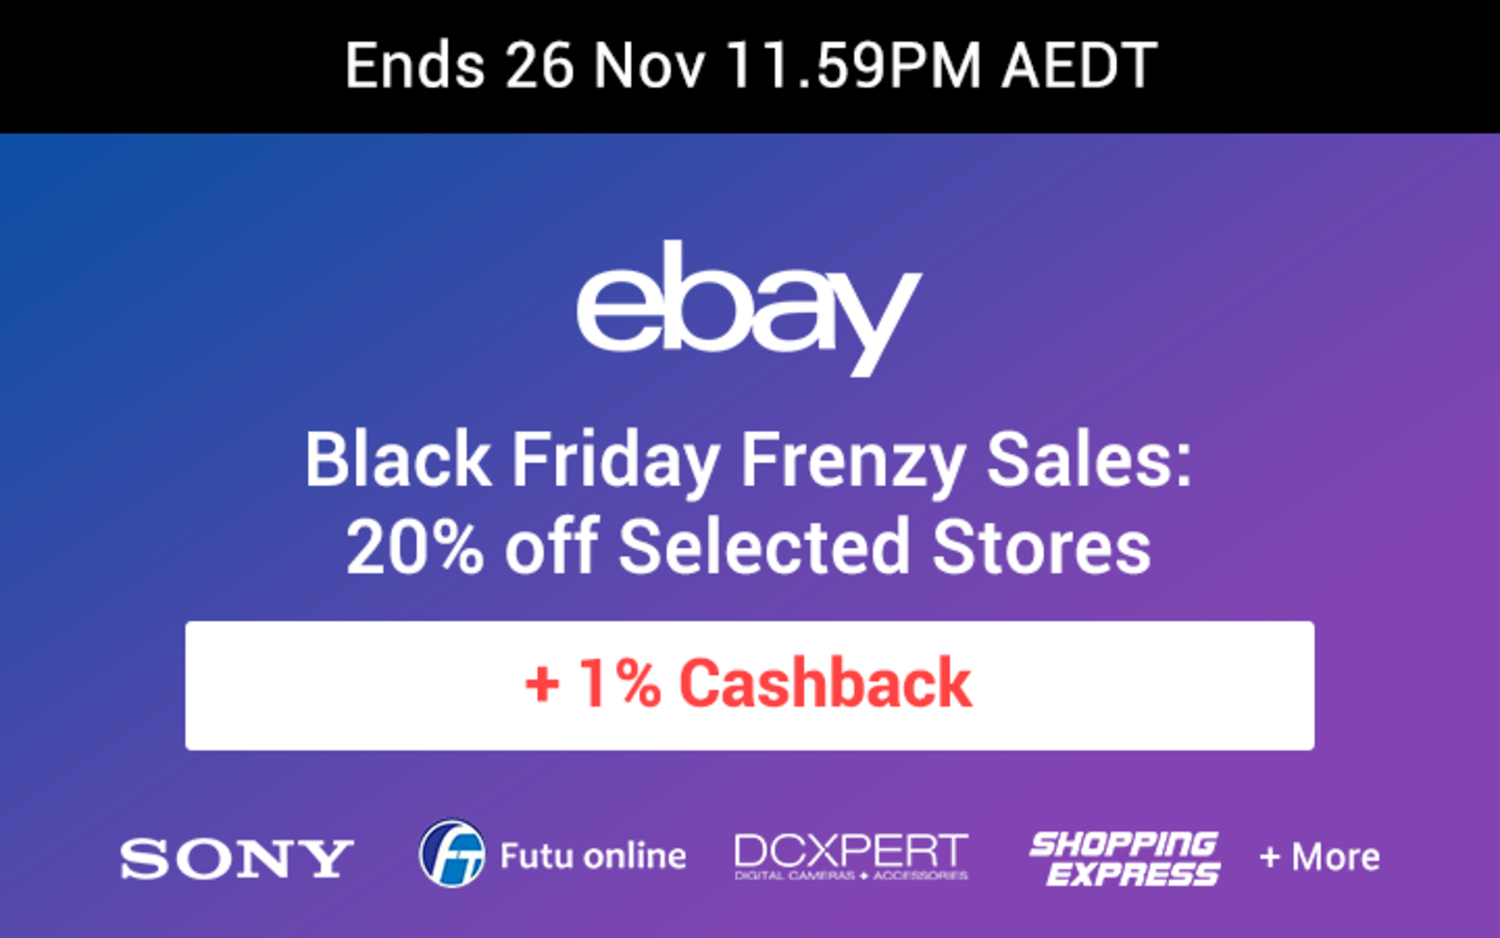 eBay - 20% off Selected Stores for Black Friday Cyber Monday BFCM